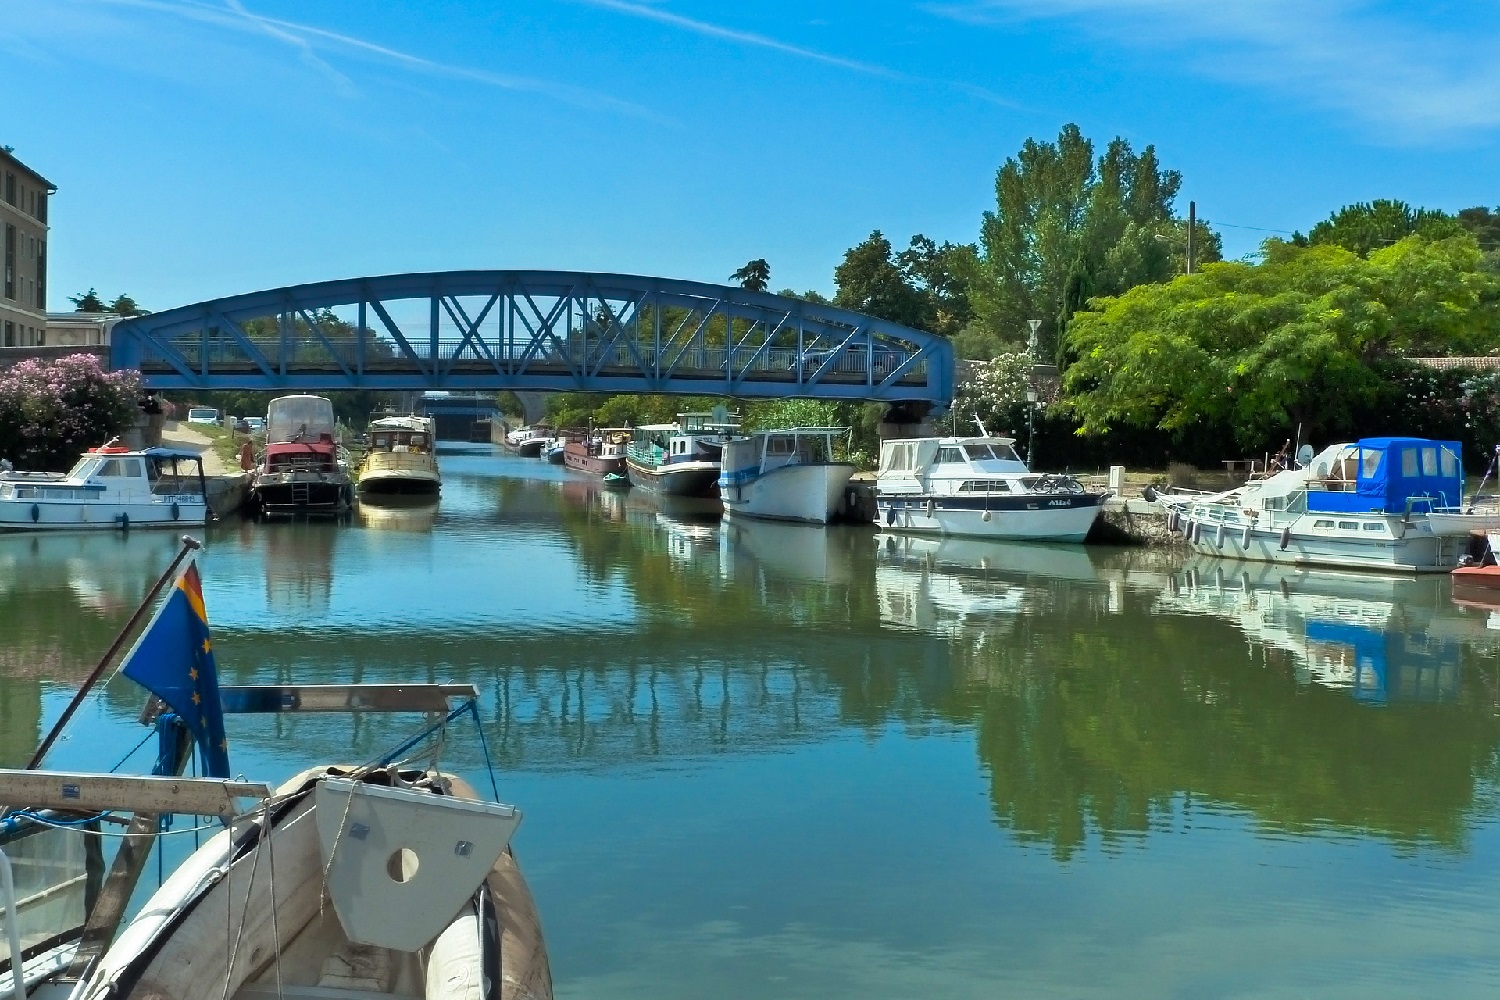 Image of a canal in the port city of Beaucaire.